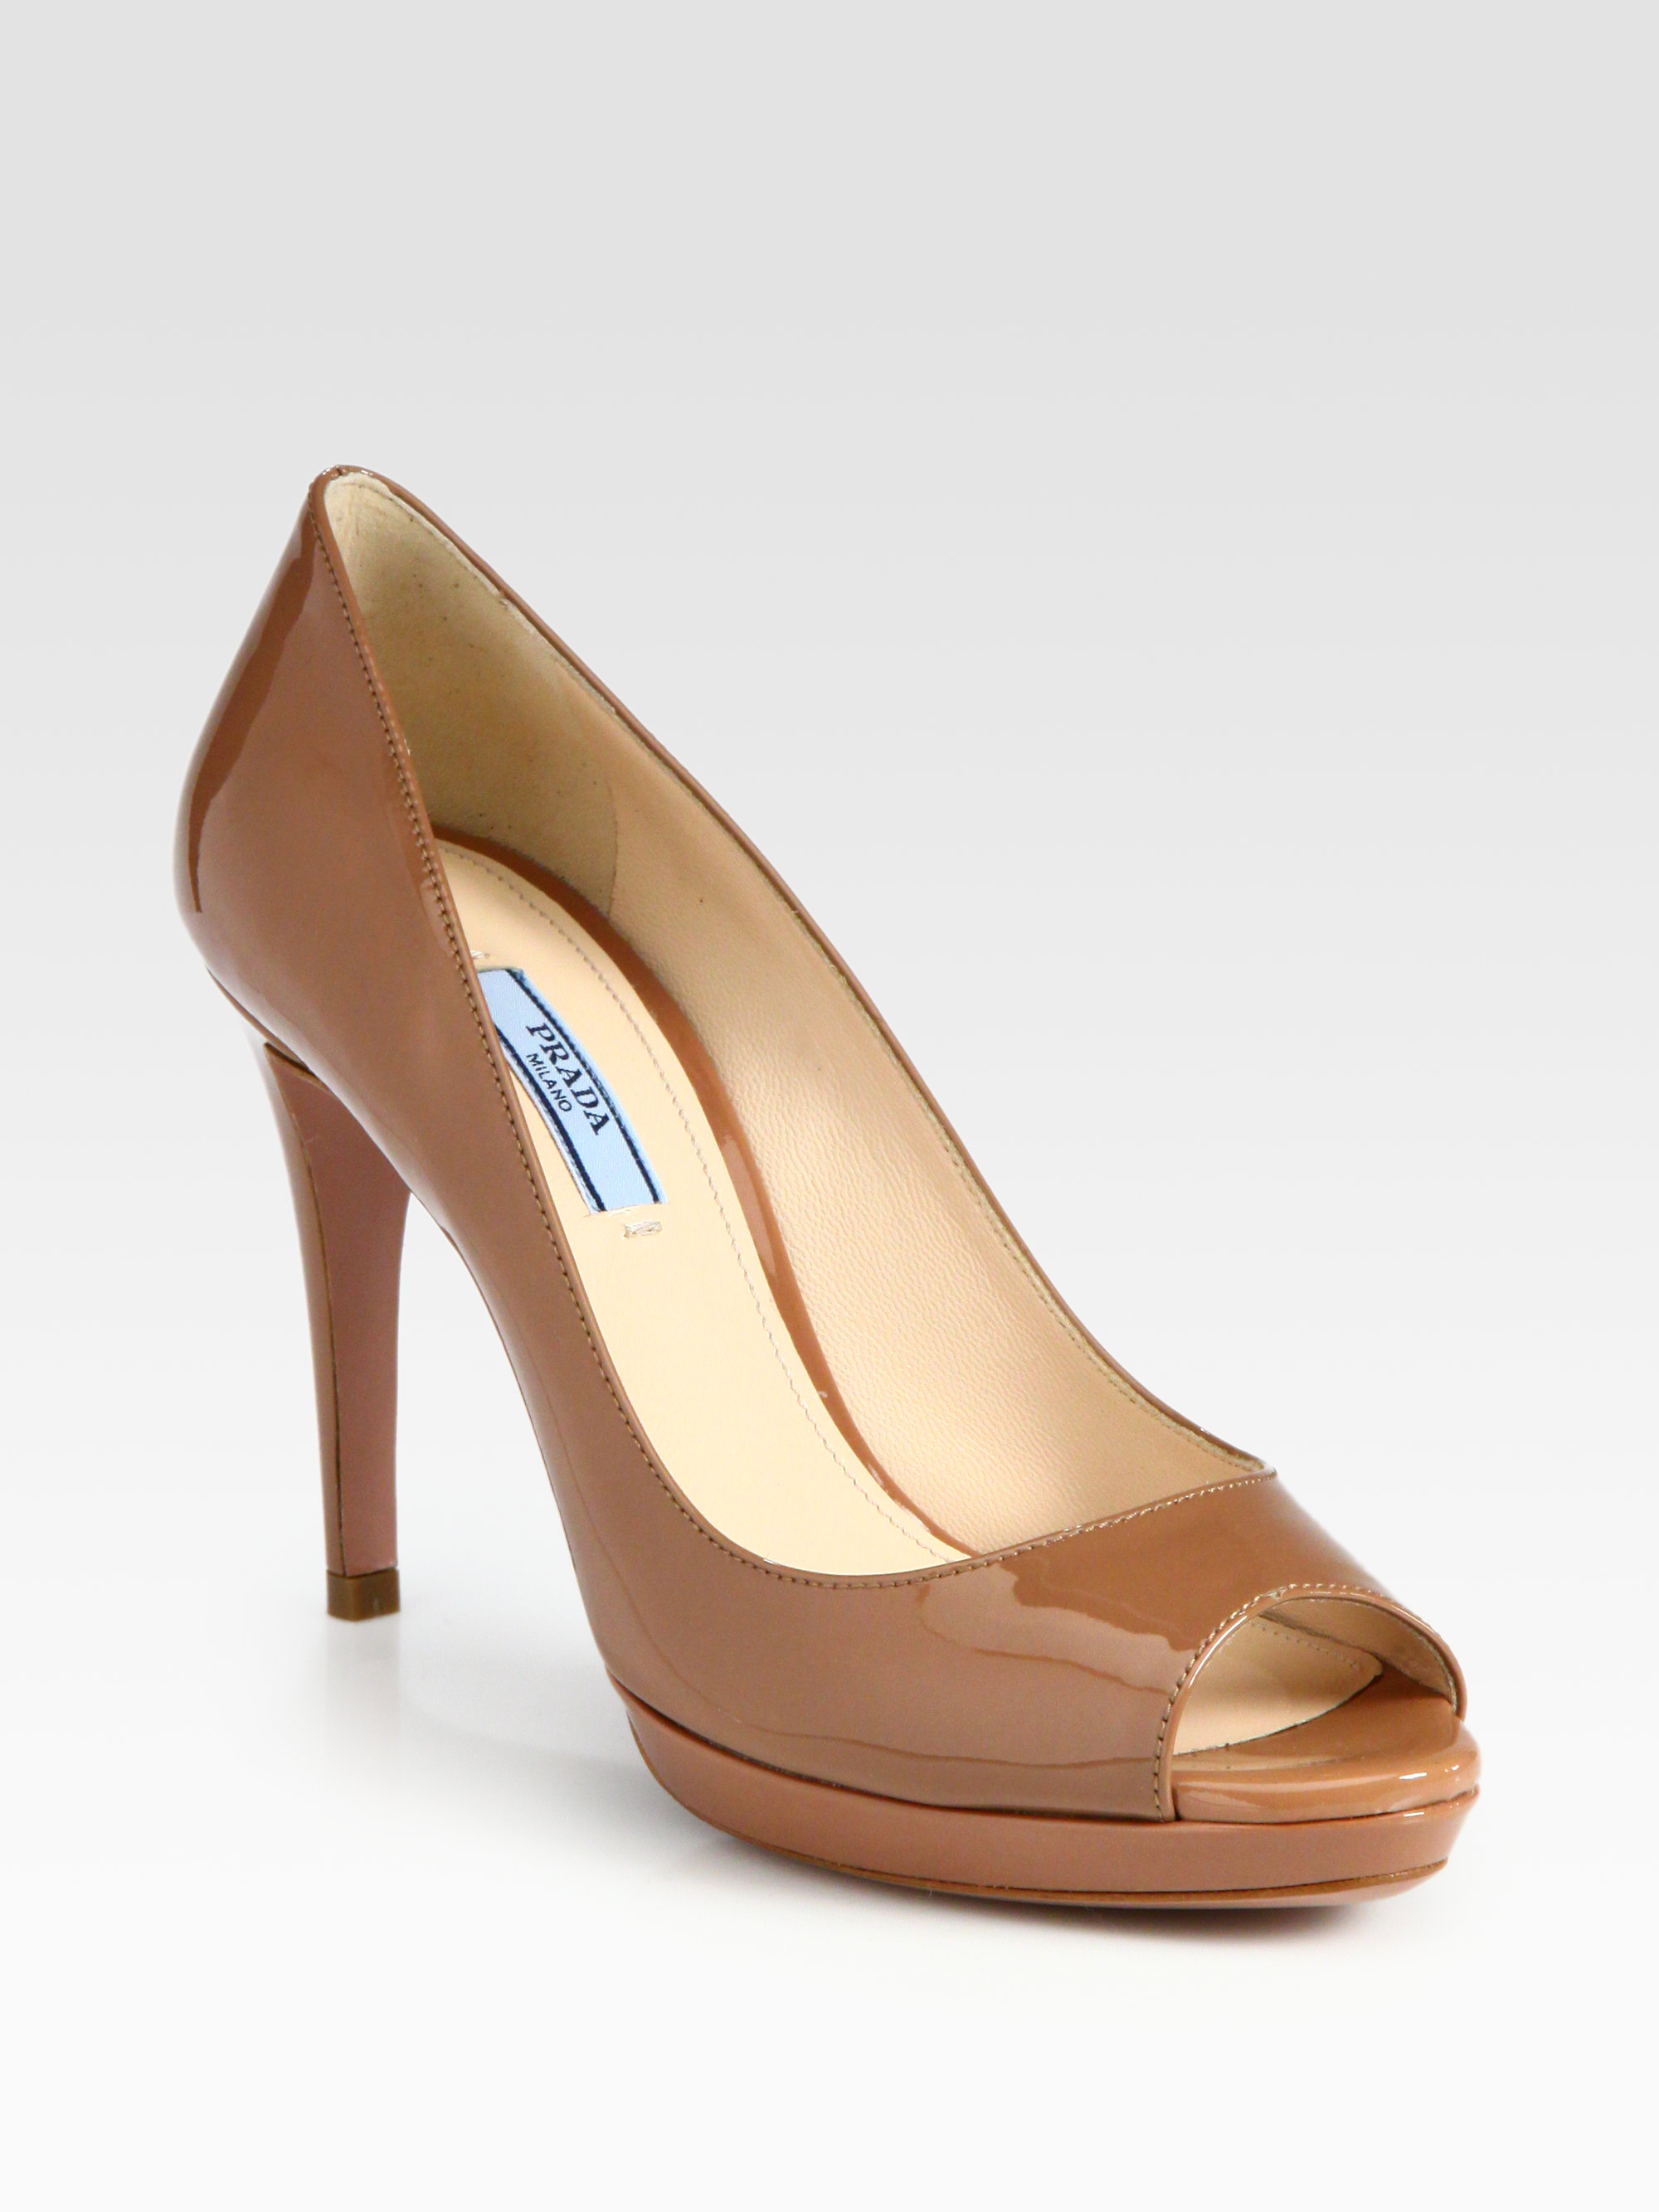 a2ae84512806 Lyst - Prada Patent Leather Peep Toe Pumps in Brown